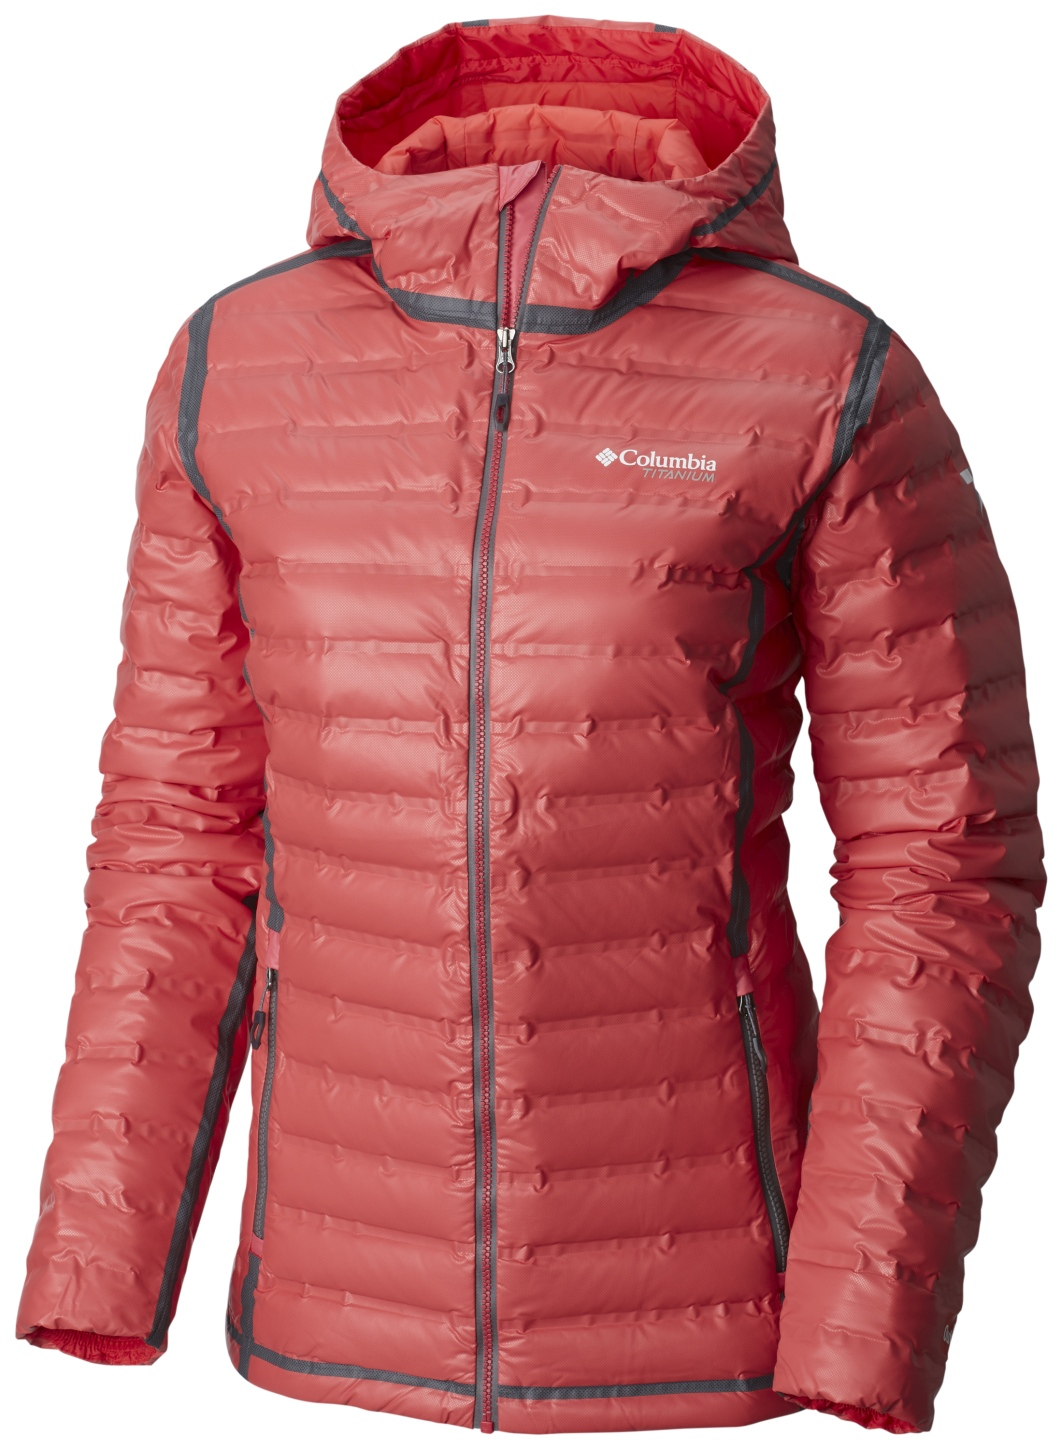 Columbia Women's OutDry Extreme Gold Down Hooded Jacket Red Camellia, Spray-30